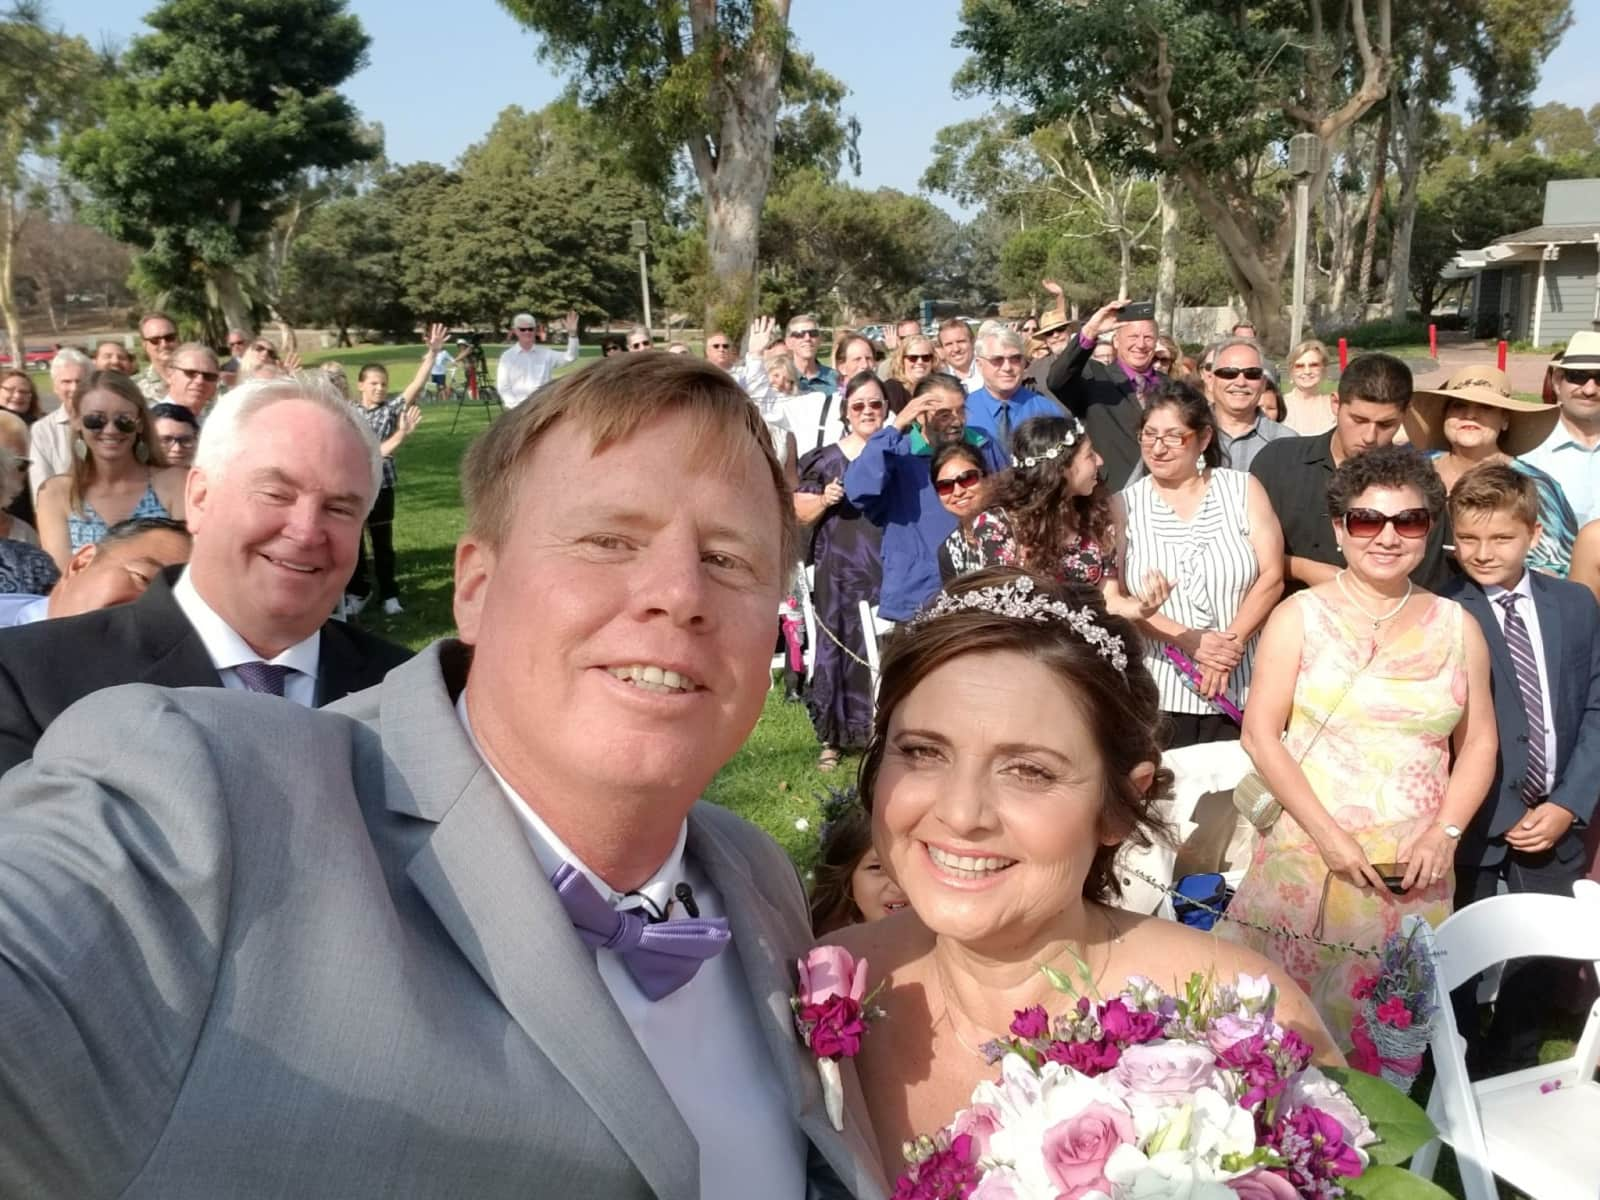 Kevin & Alicia from San Diego, California, United States